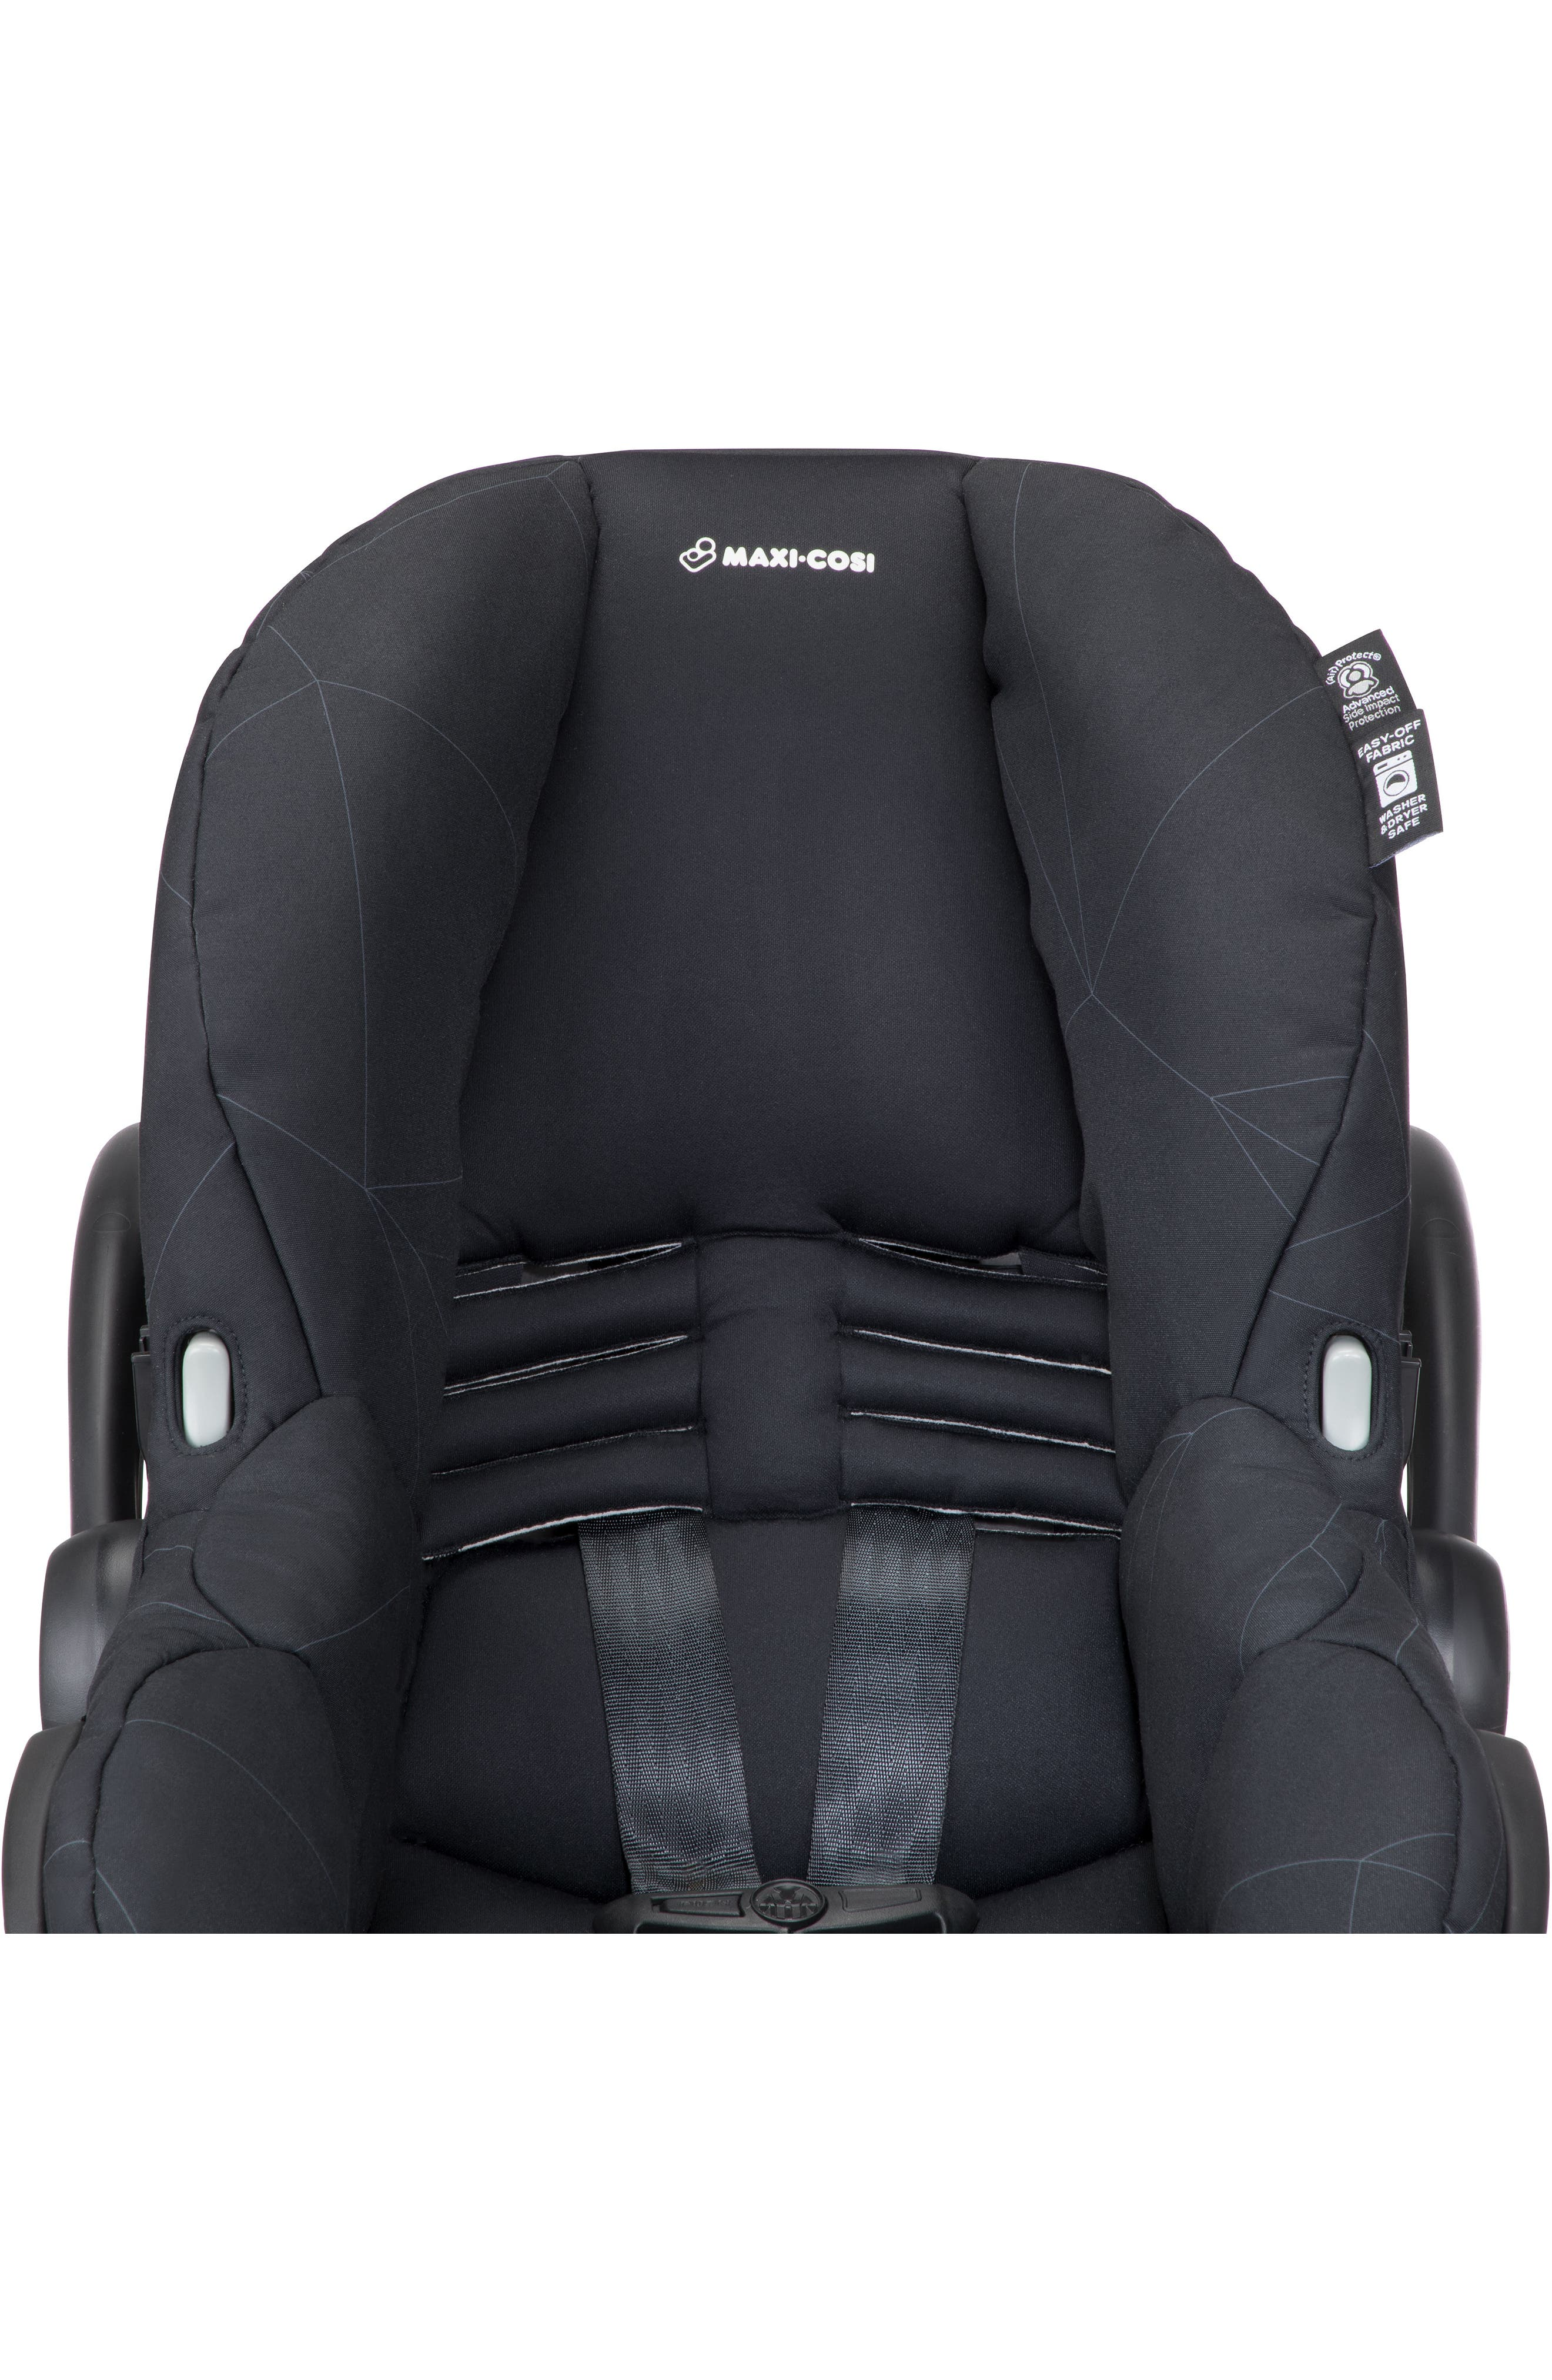 Pria<sup>™</sup> 85 Max Convertible Car Seat,                             Alternate thumbnail 5, color,                             DIAMOND LINES